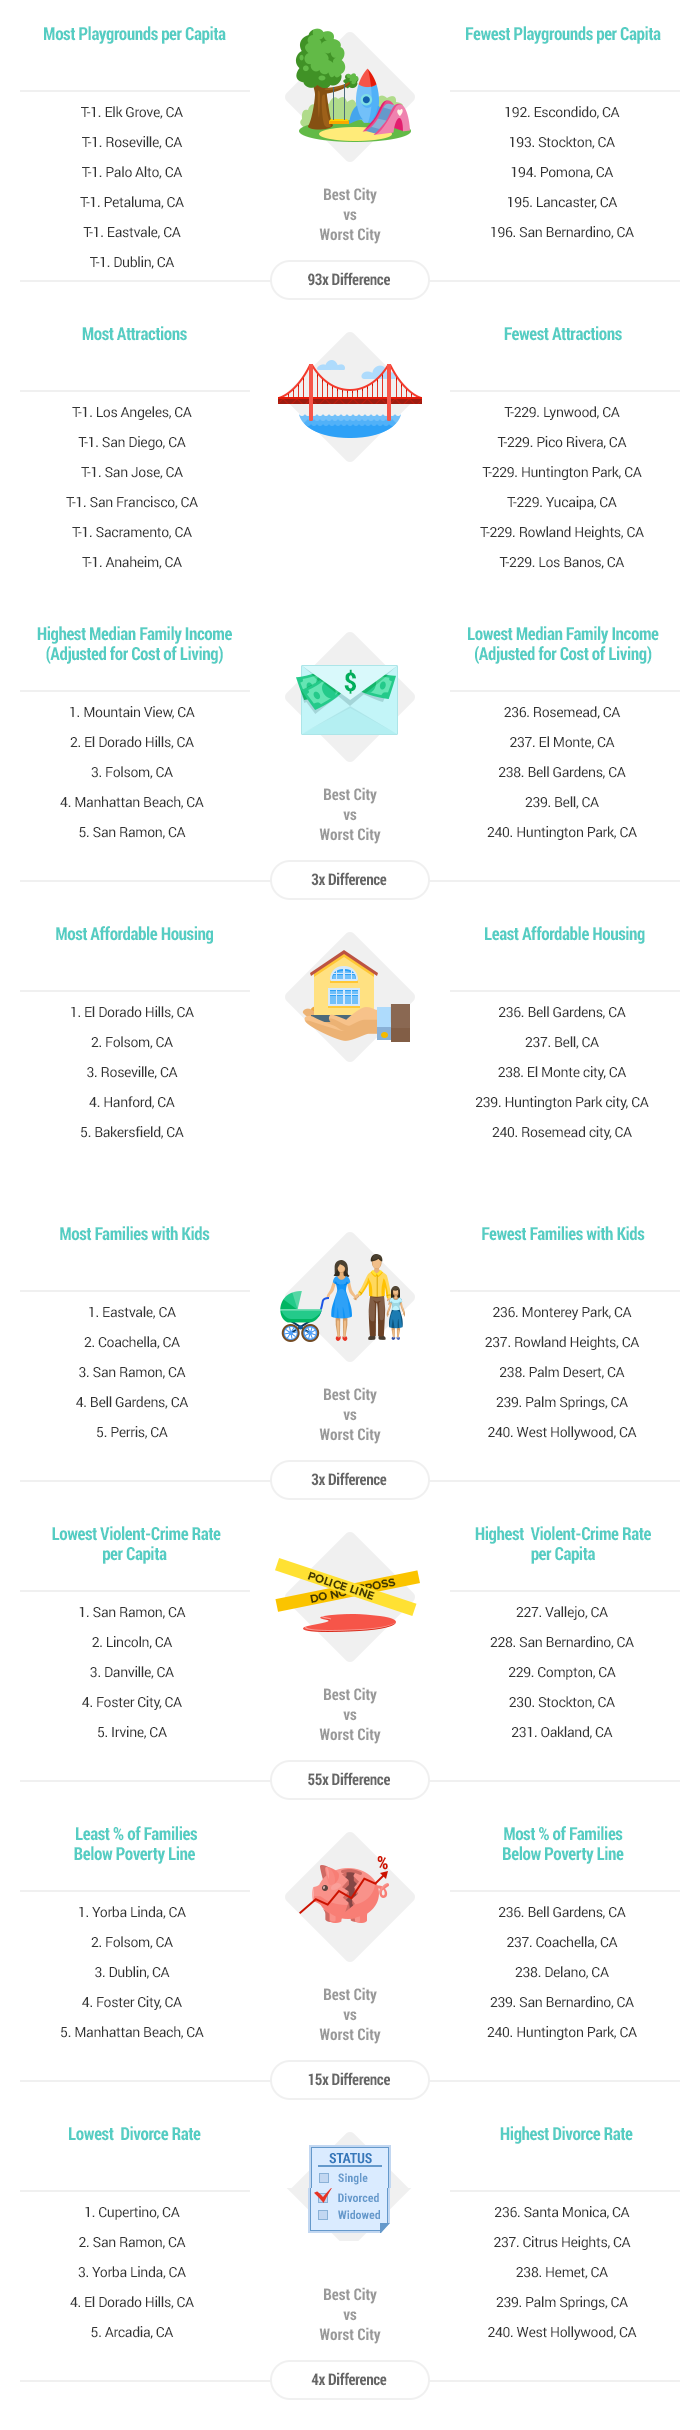 Artwork-Best-&-Worst-Cities-for-Families-in-California-report-2016